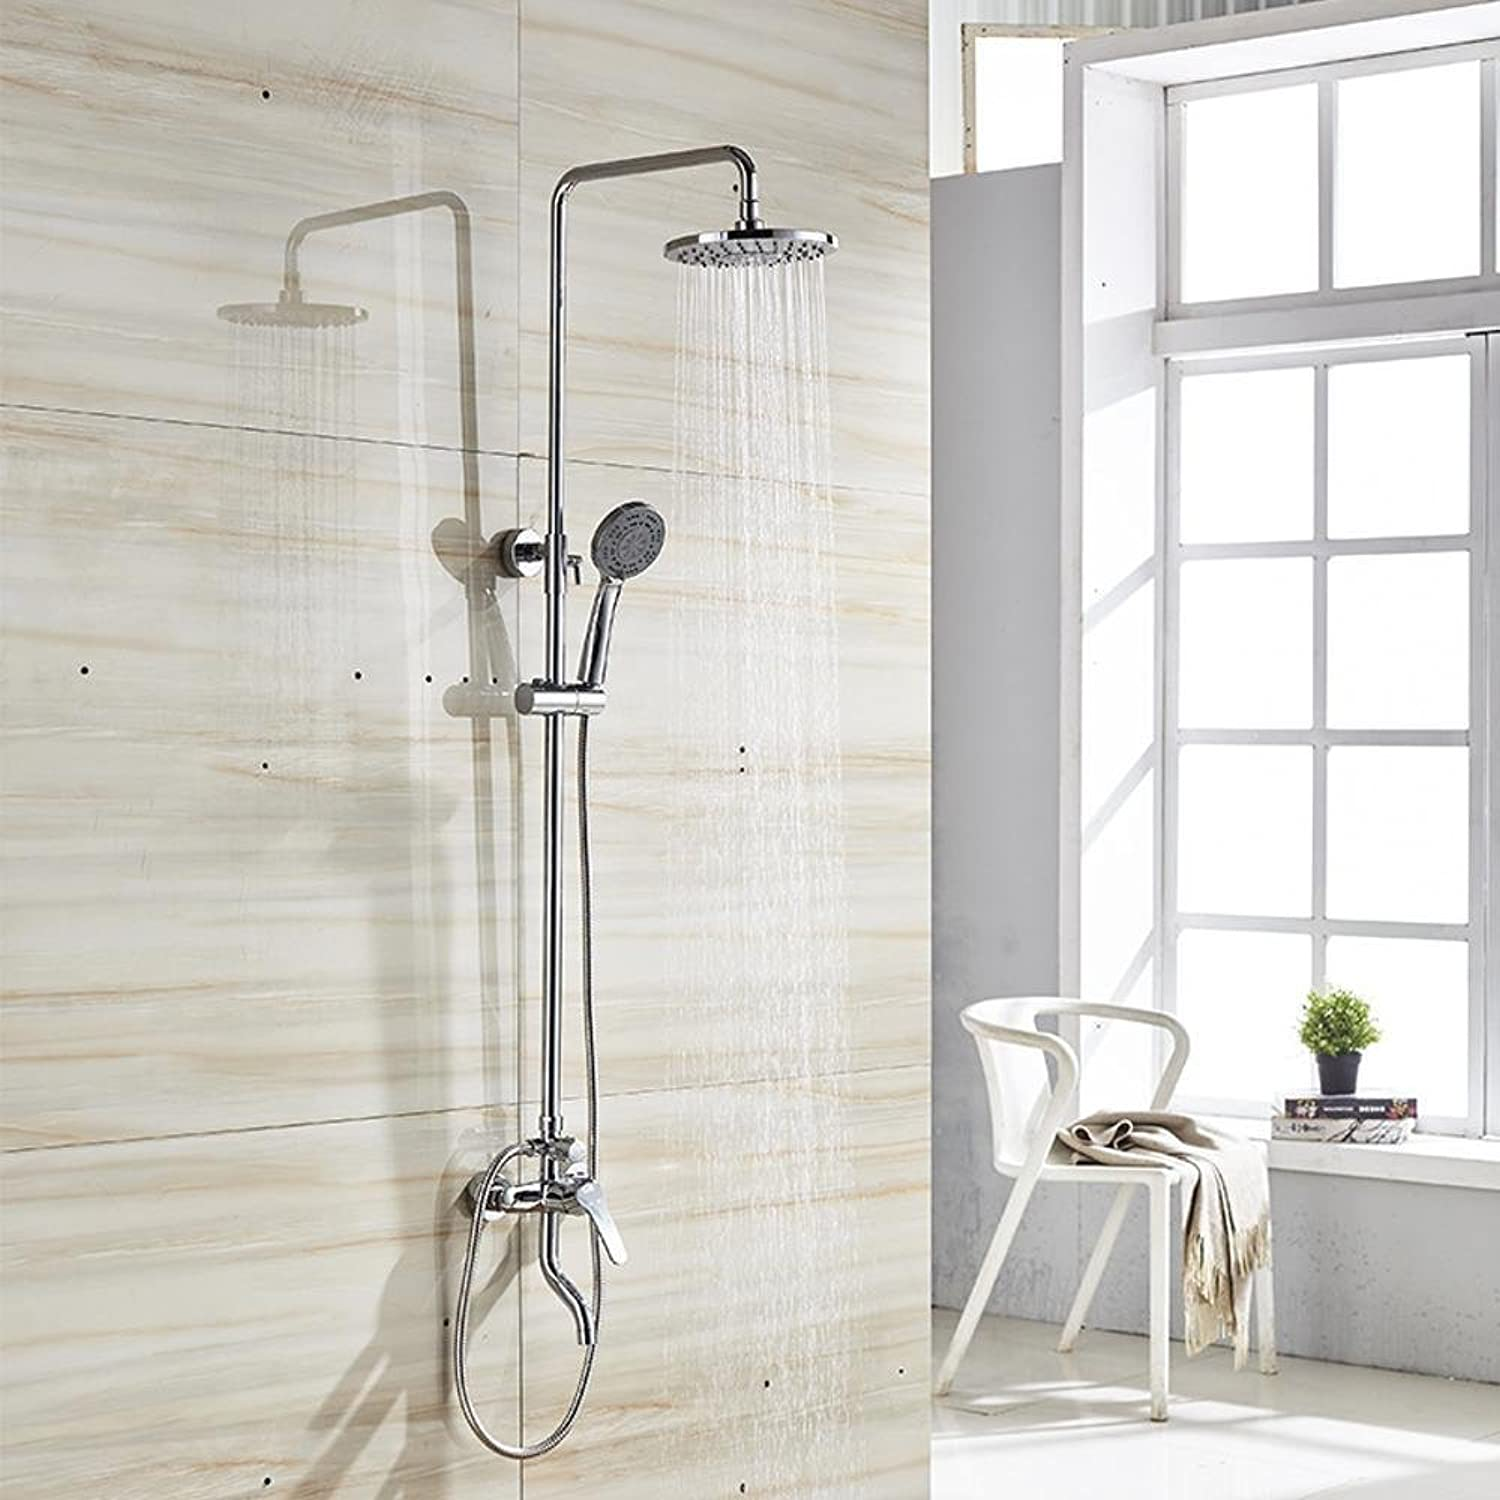 MAFYU Shower Systems All Copper Body Holding Shower Set